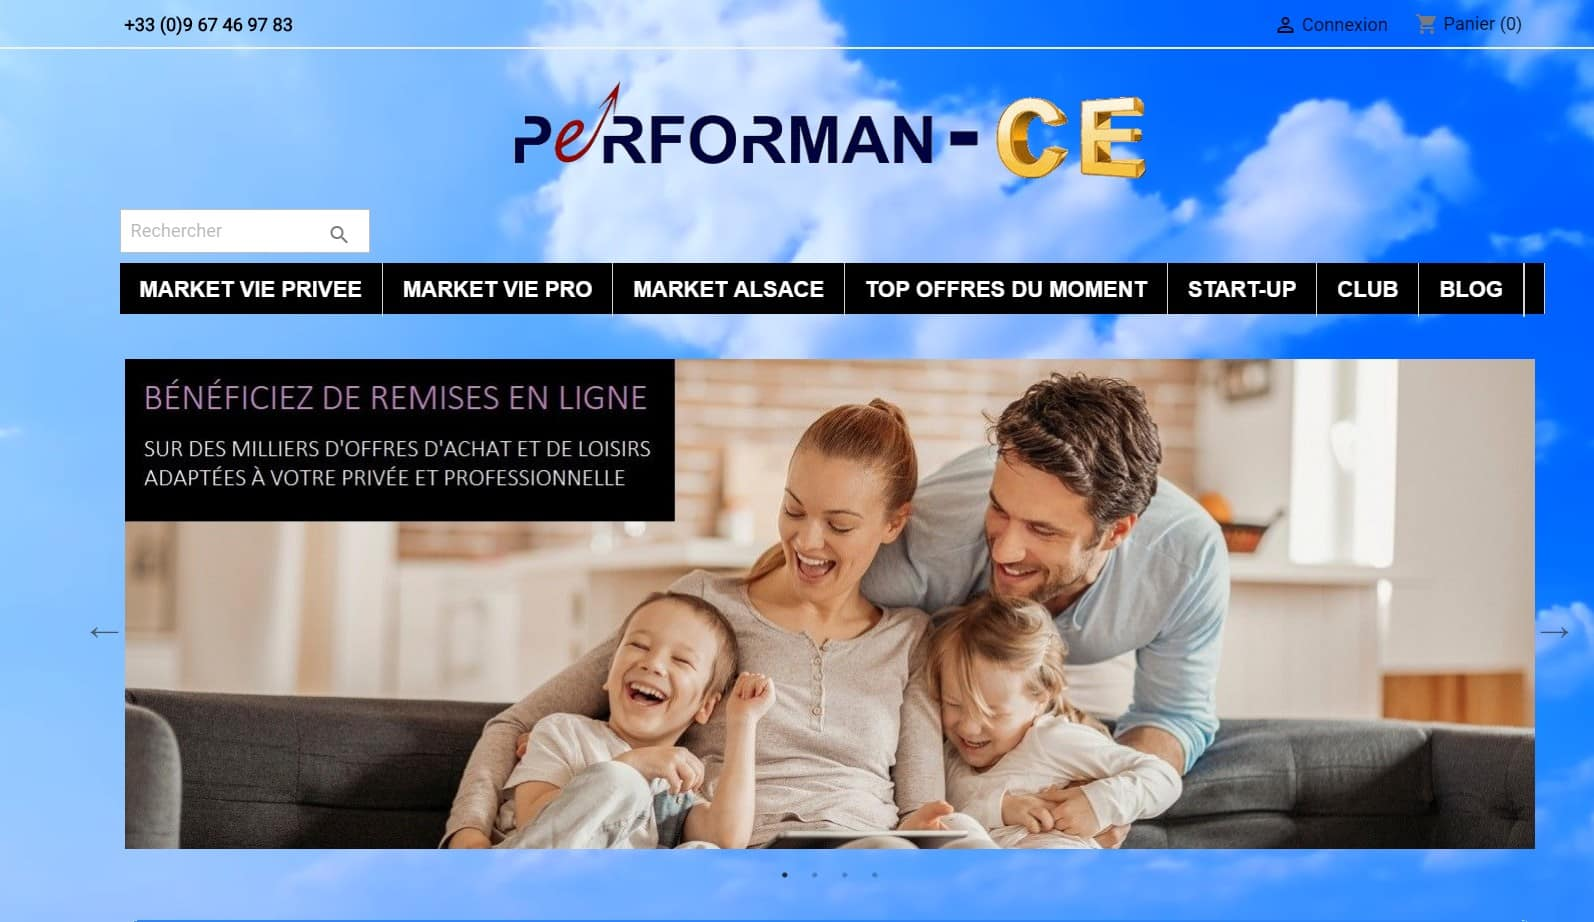 performan-ce.com